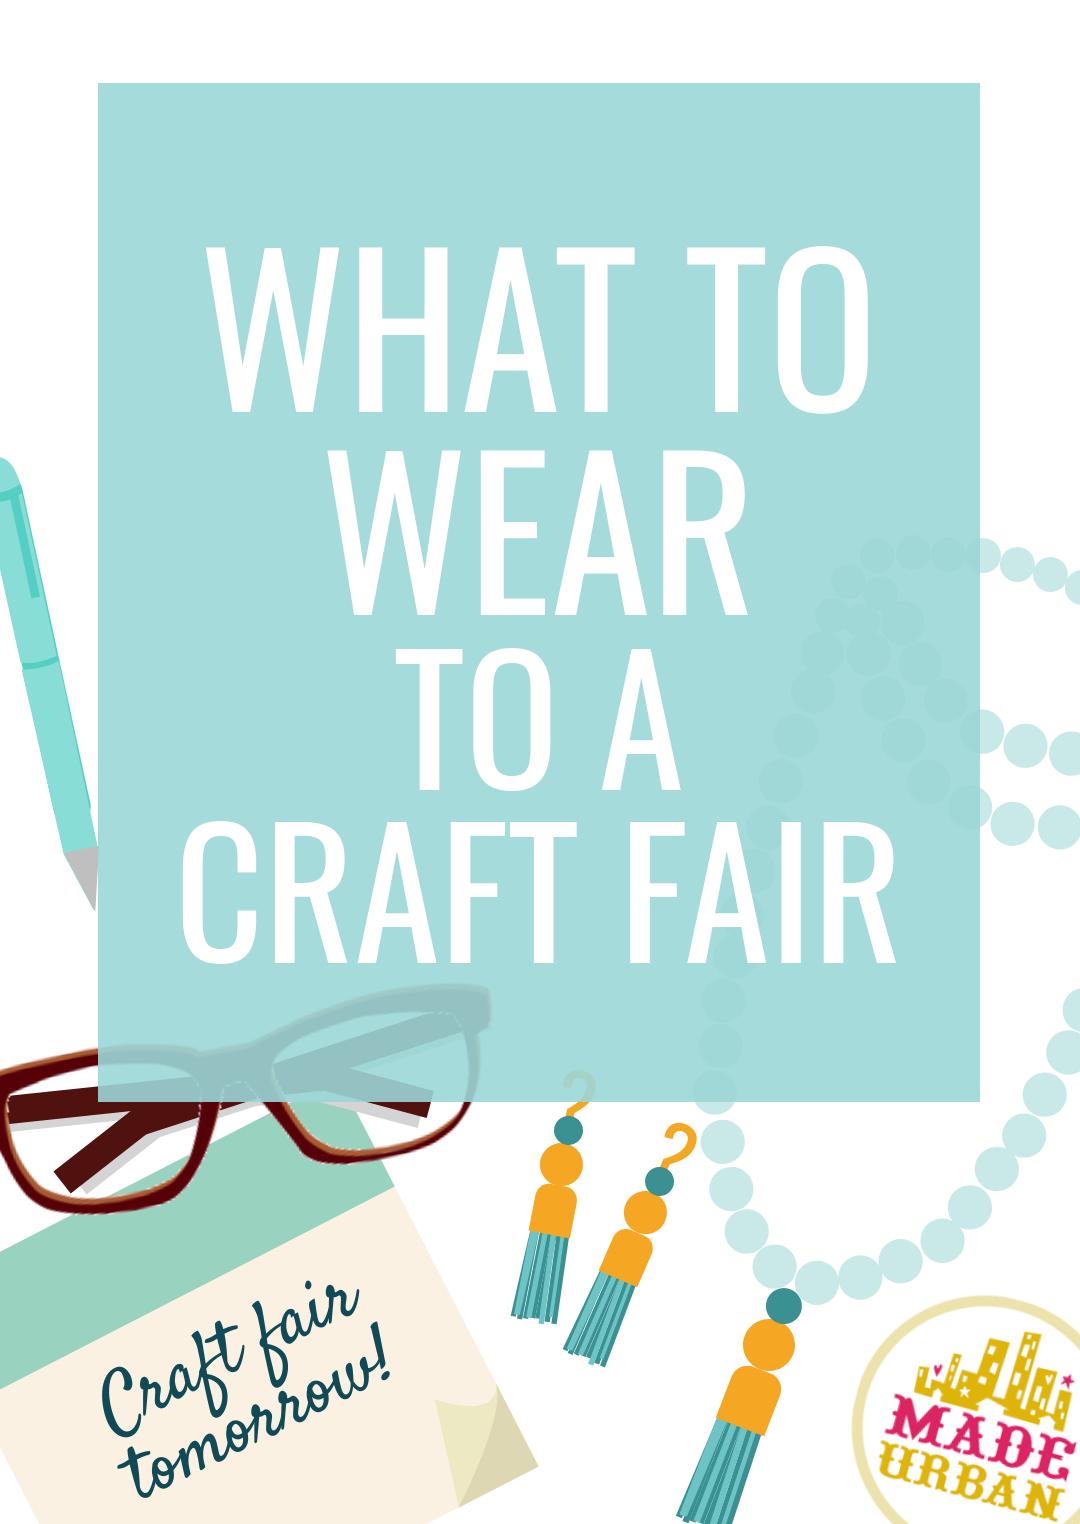 Asking what to wear to a craft fair is like asking what to wear to work; it depends on the work environment, your position, what you're selling, etc. What you wear to a craft fair should not be based on what's most convenient or comfortable if you want to come across as a professional business owner and use your look to sell your products. Here are four factors to consider when choosing your outfit.